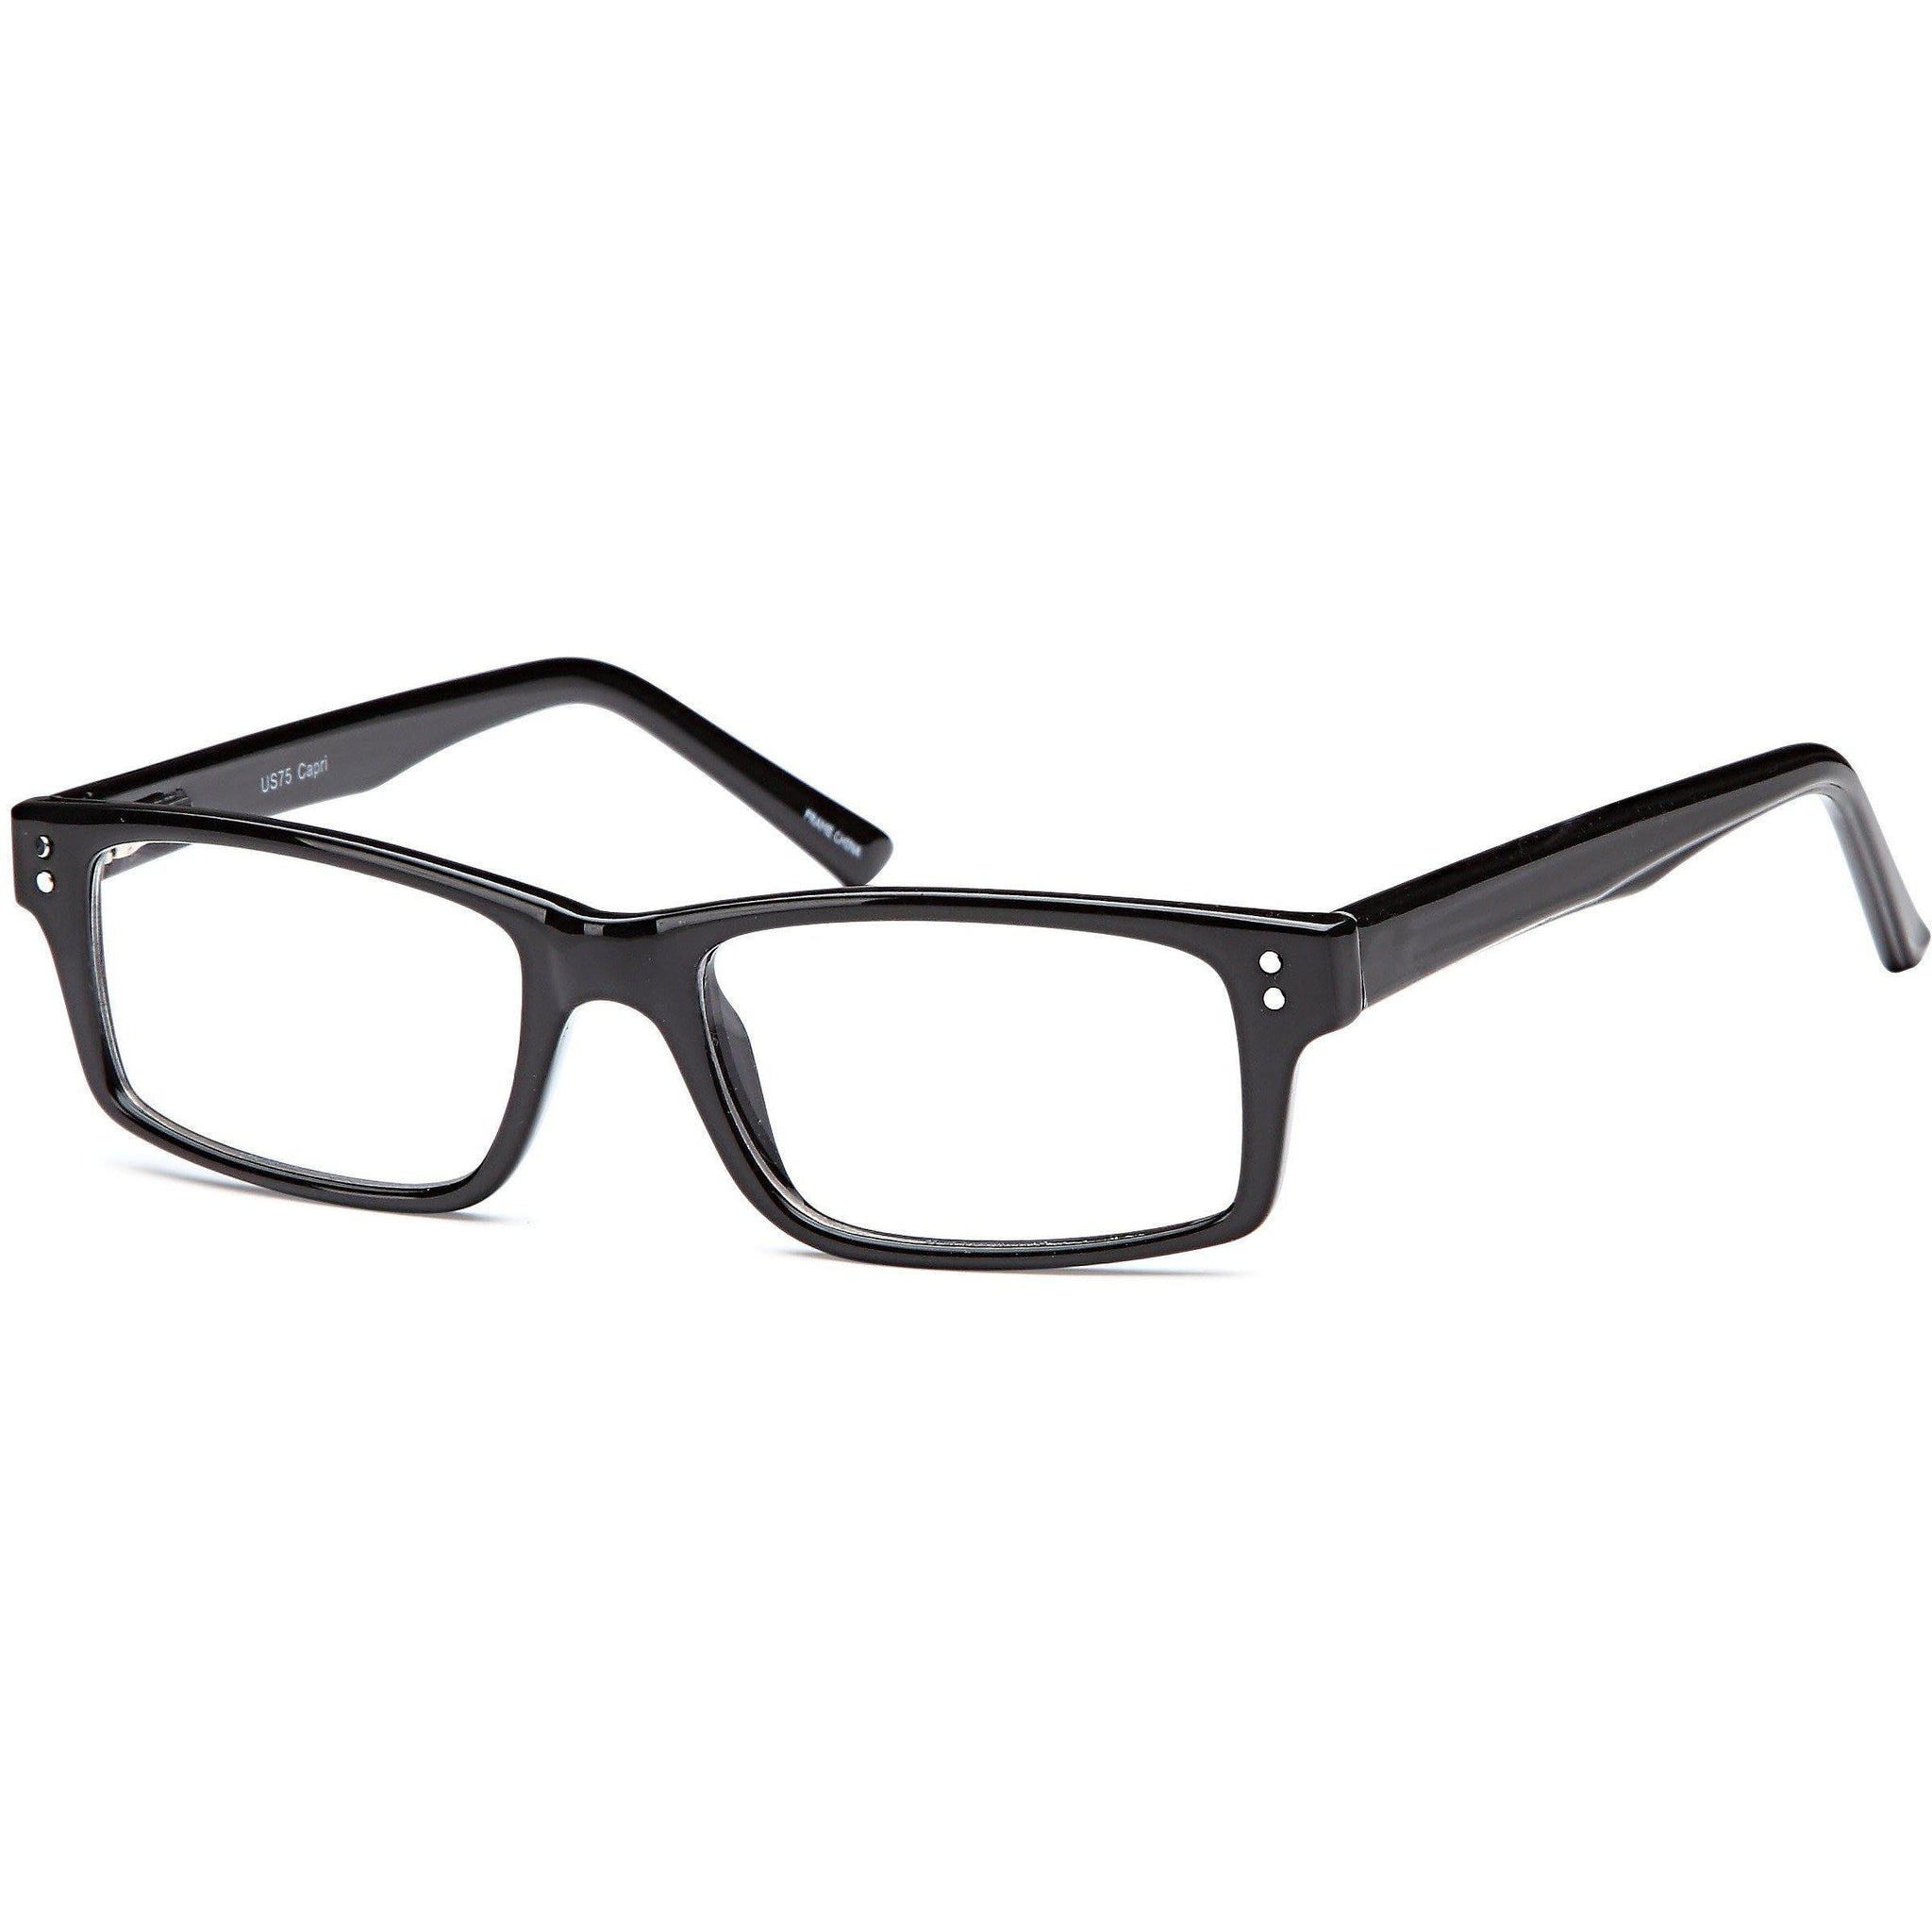 4U Prescription Glasses US 75 Optical Eyeglasses Frame - timetoshade